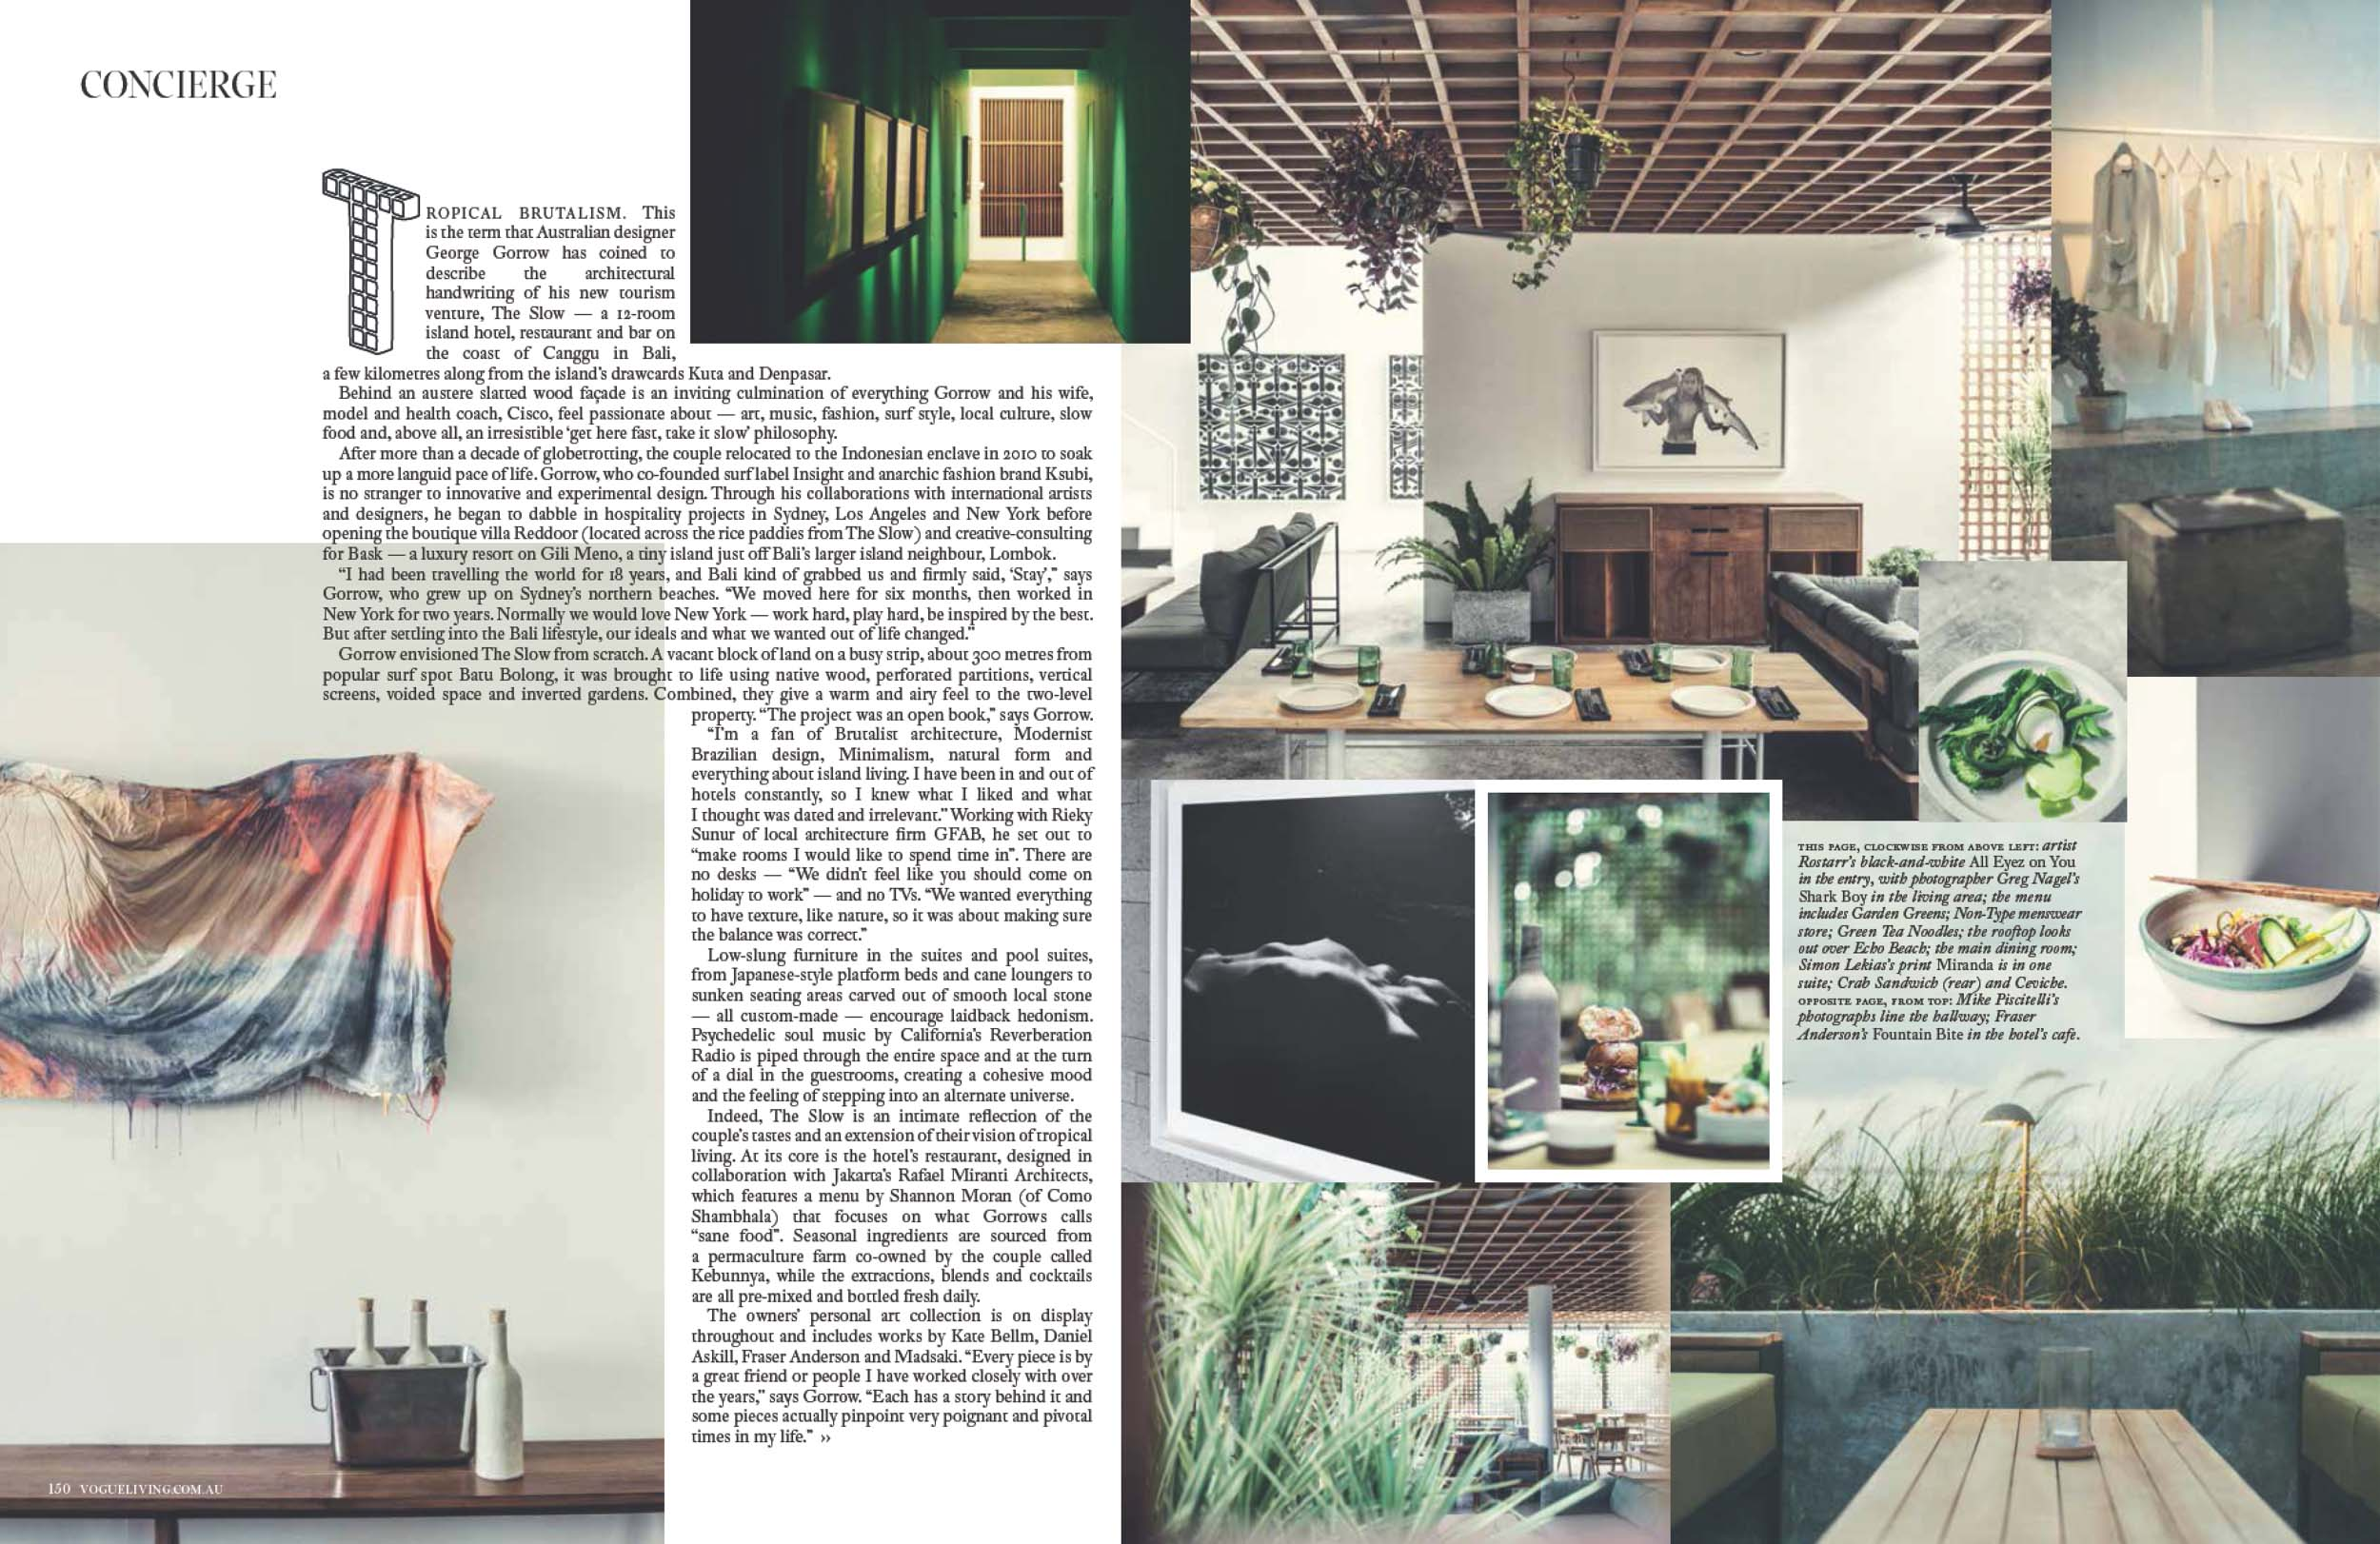 vogue-living-australia-natalie-shukur-tommaso-riva-george-gorrow-the-slow-bali-interiors (3 of 4).jpg